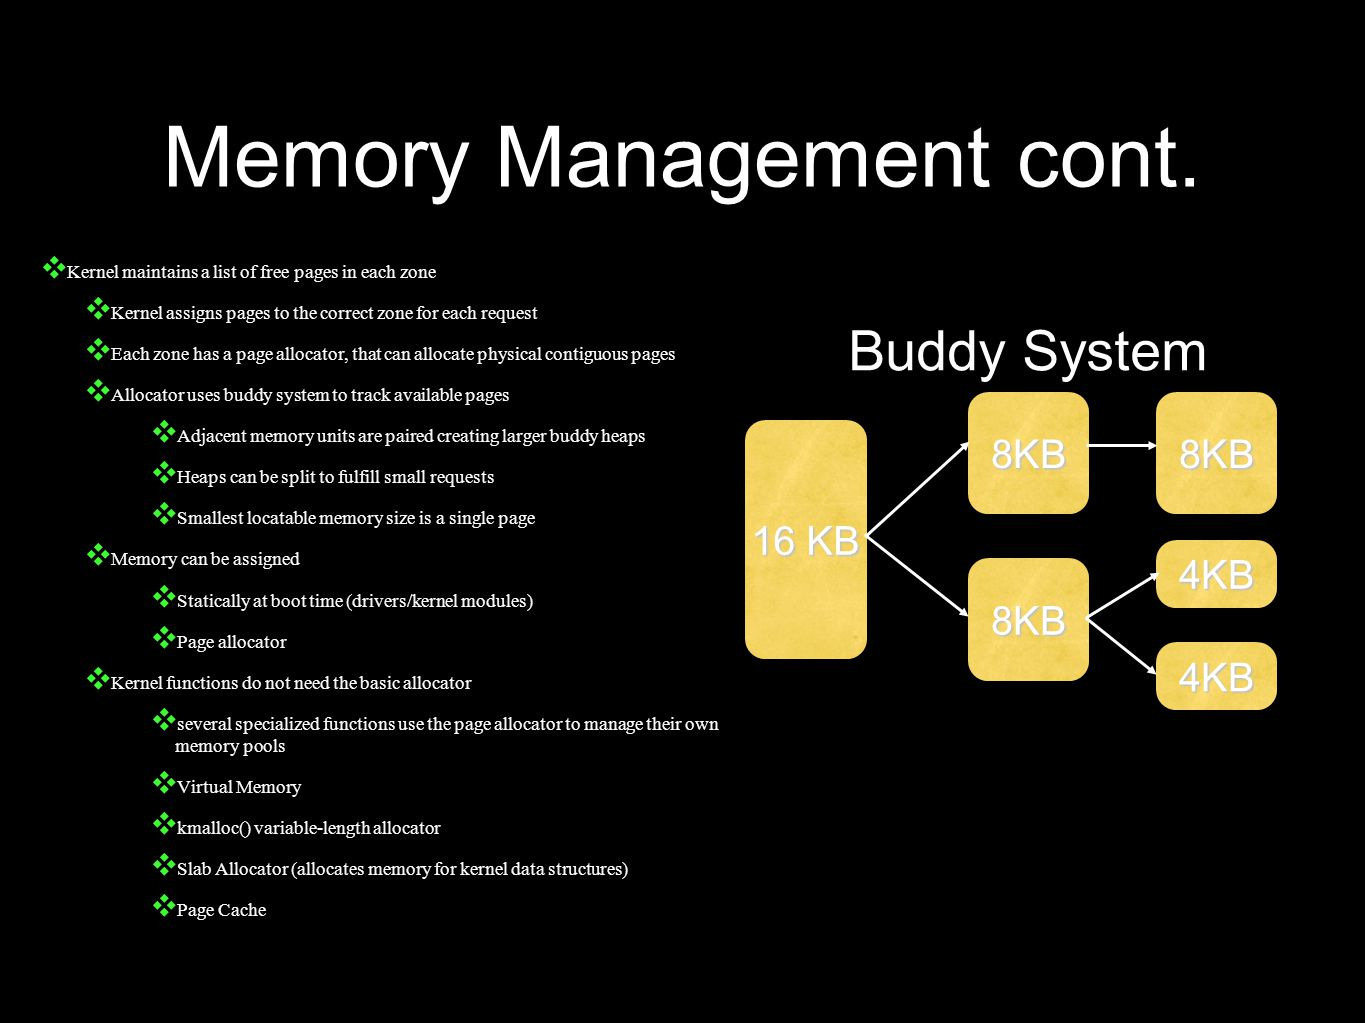 Memory Management cont.